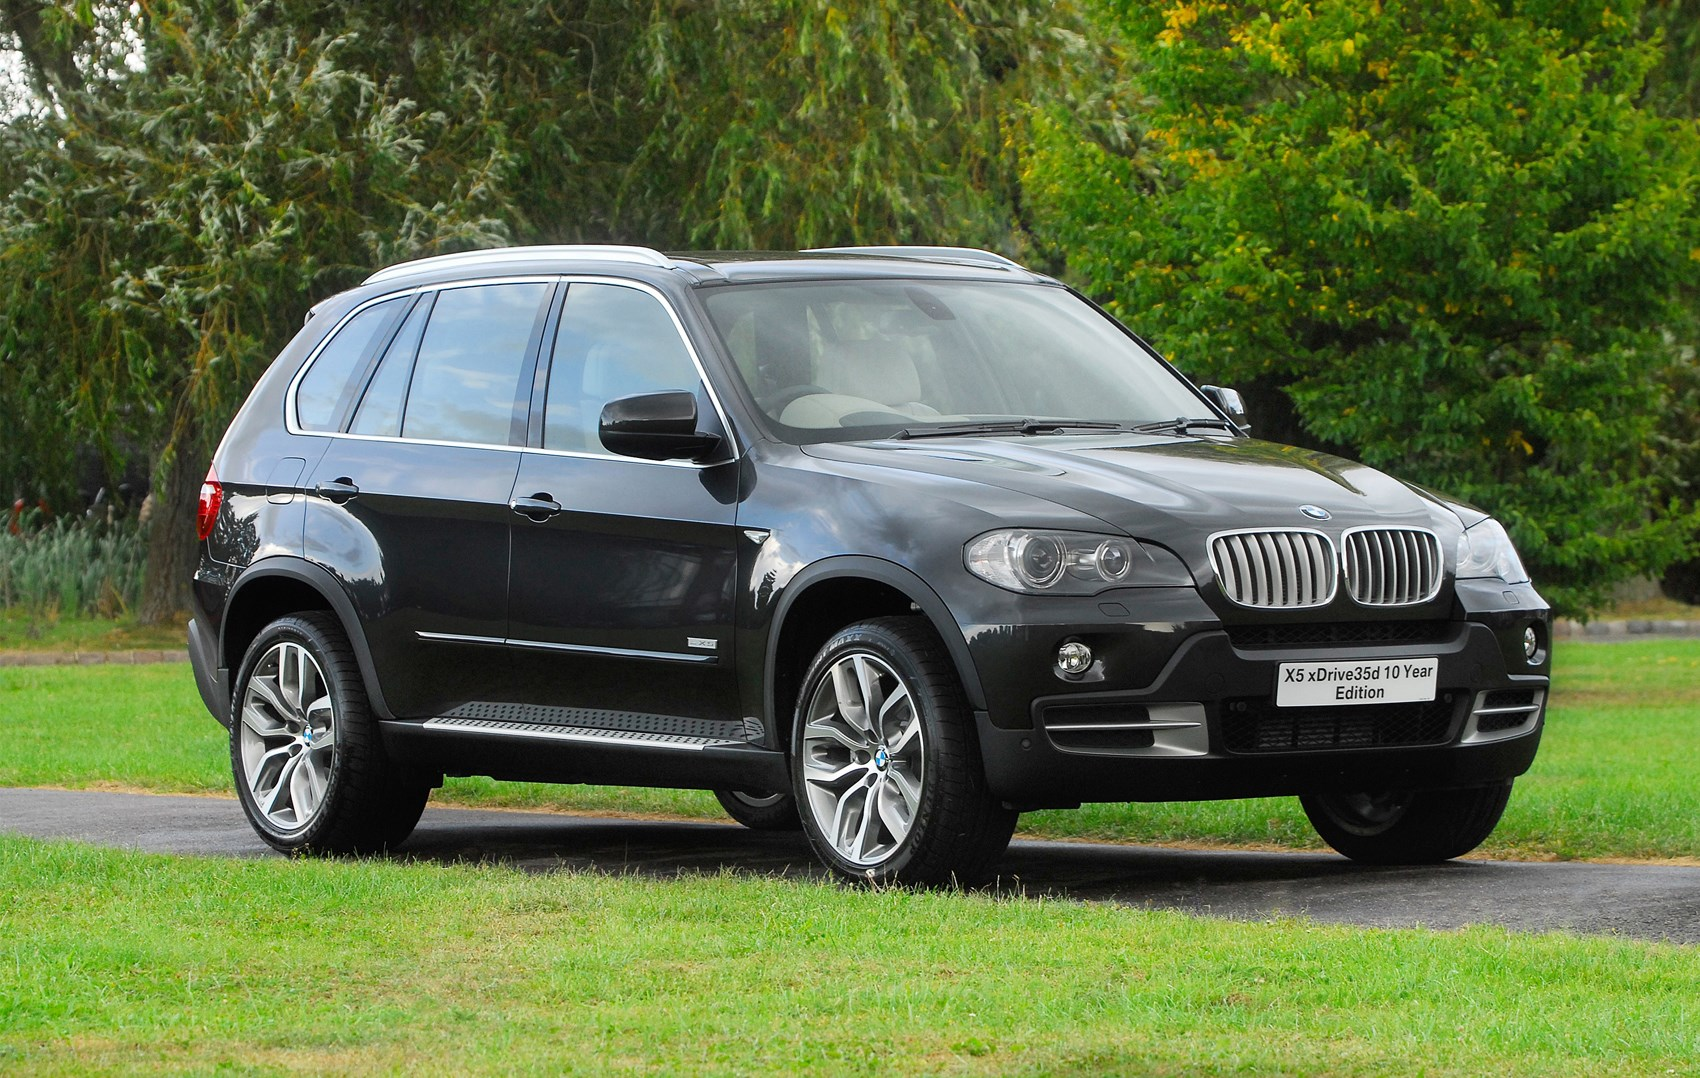 bmw x5 estate review 2007 2013 parkers. Black Bedroom Furniture Sets. Home Design Ideas